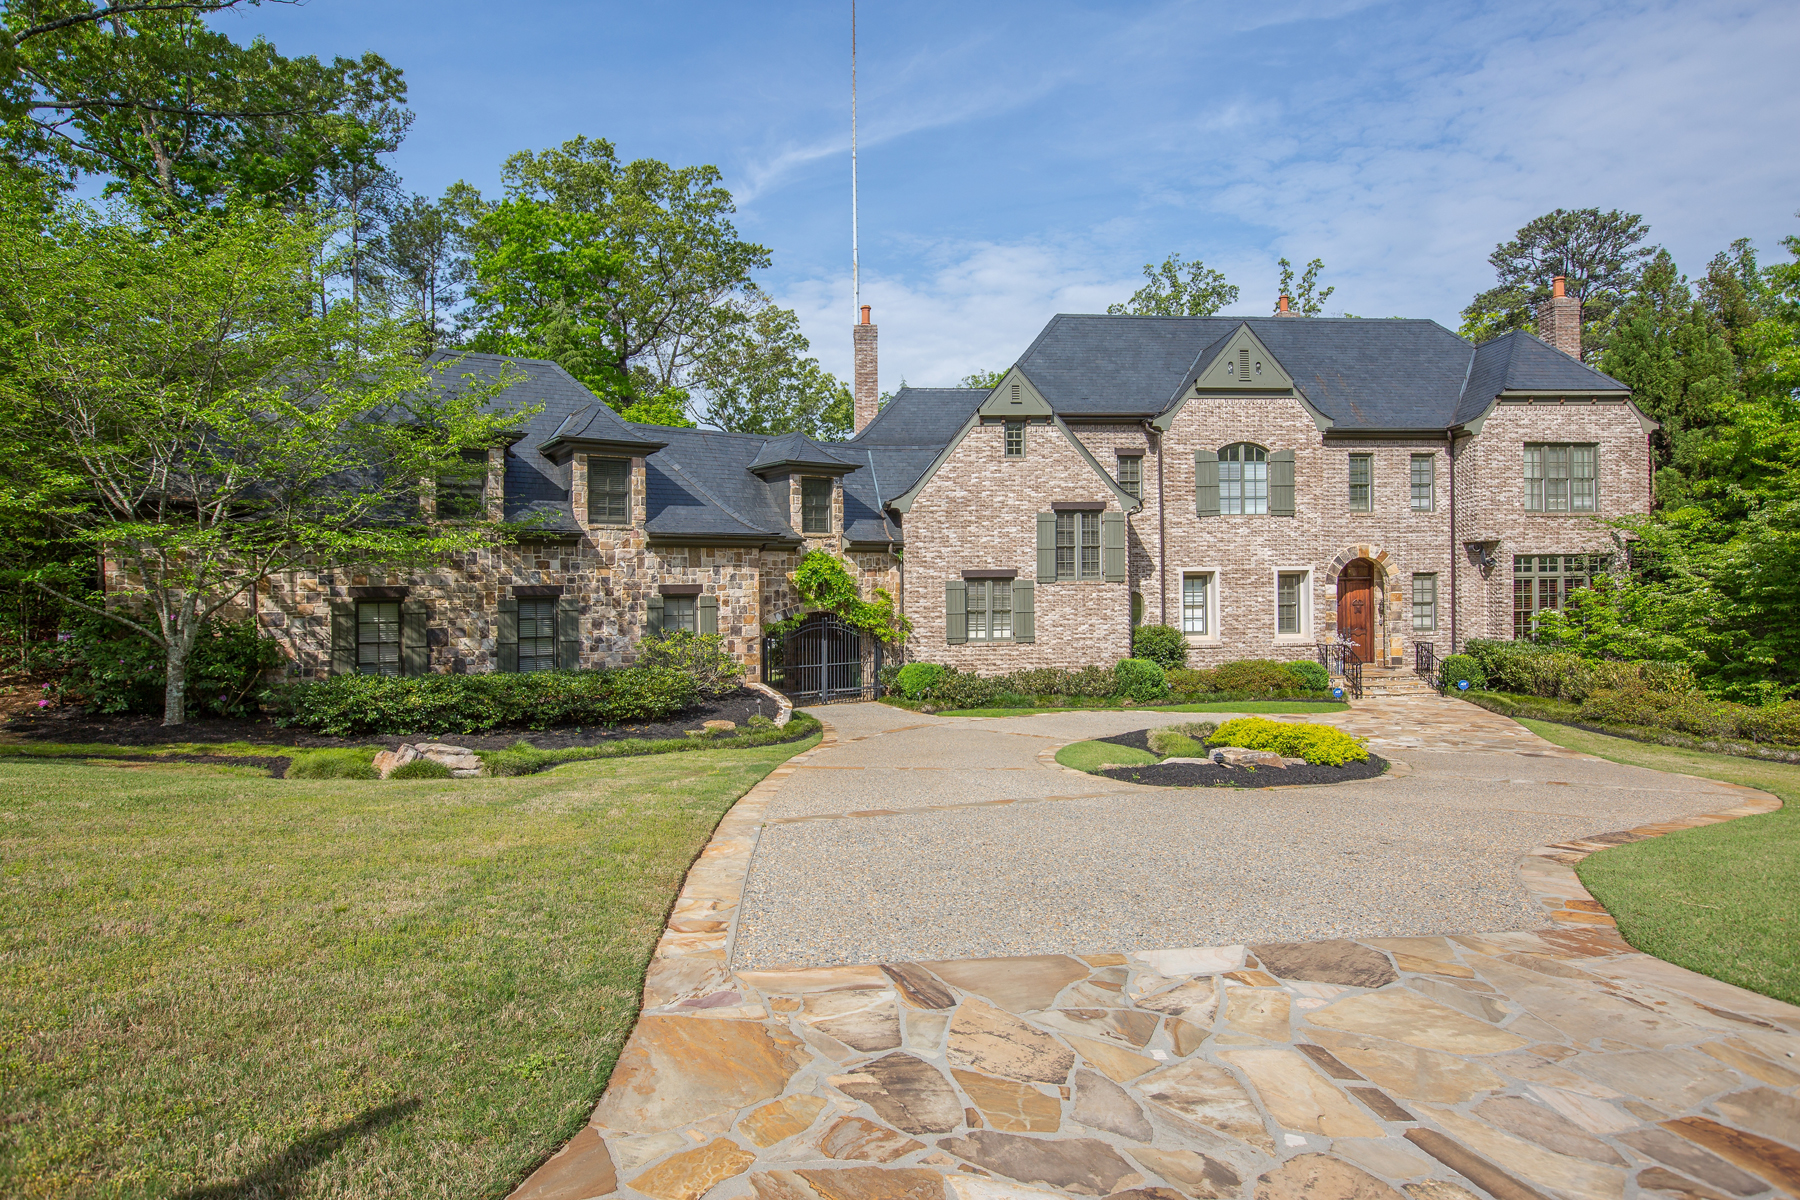 Single Family Home for Sale at Gated Brick And Stone Home 4240 Irma Court Buckhead, Atlanta, Georgia, 30327 United States